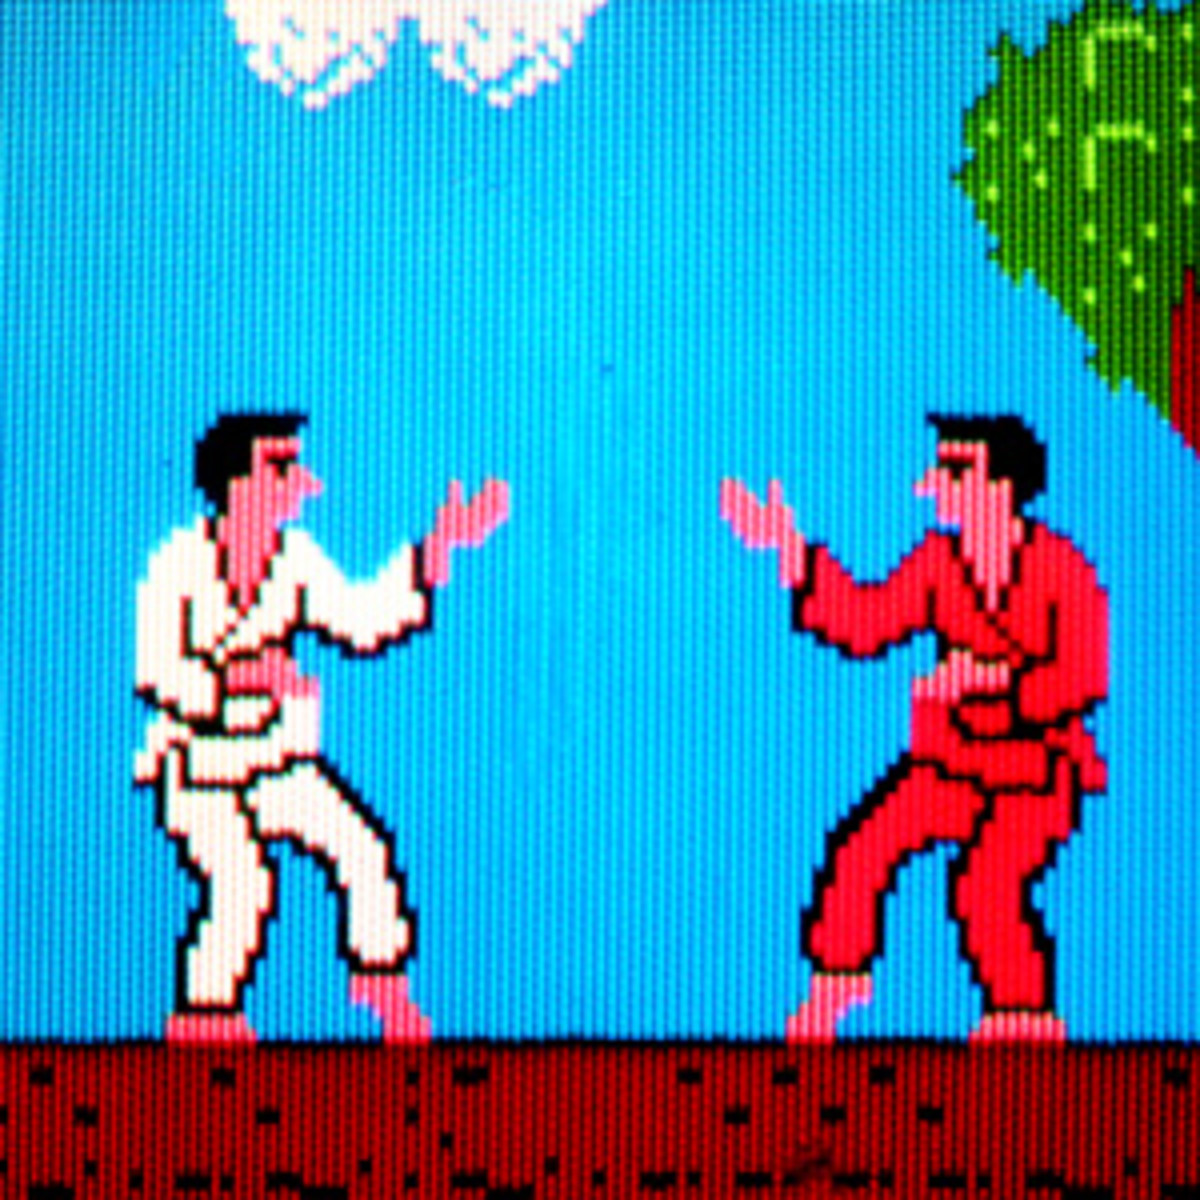 Player One Wore the White Gi in Karate Champ